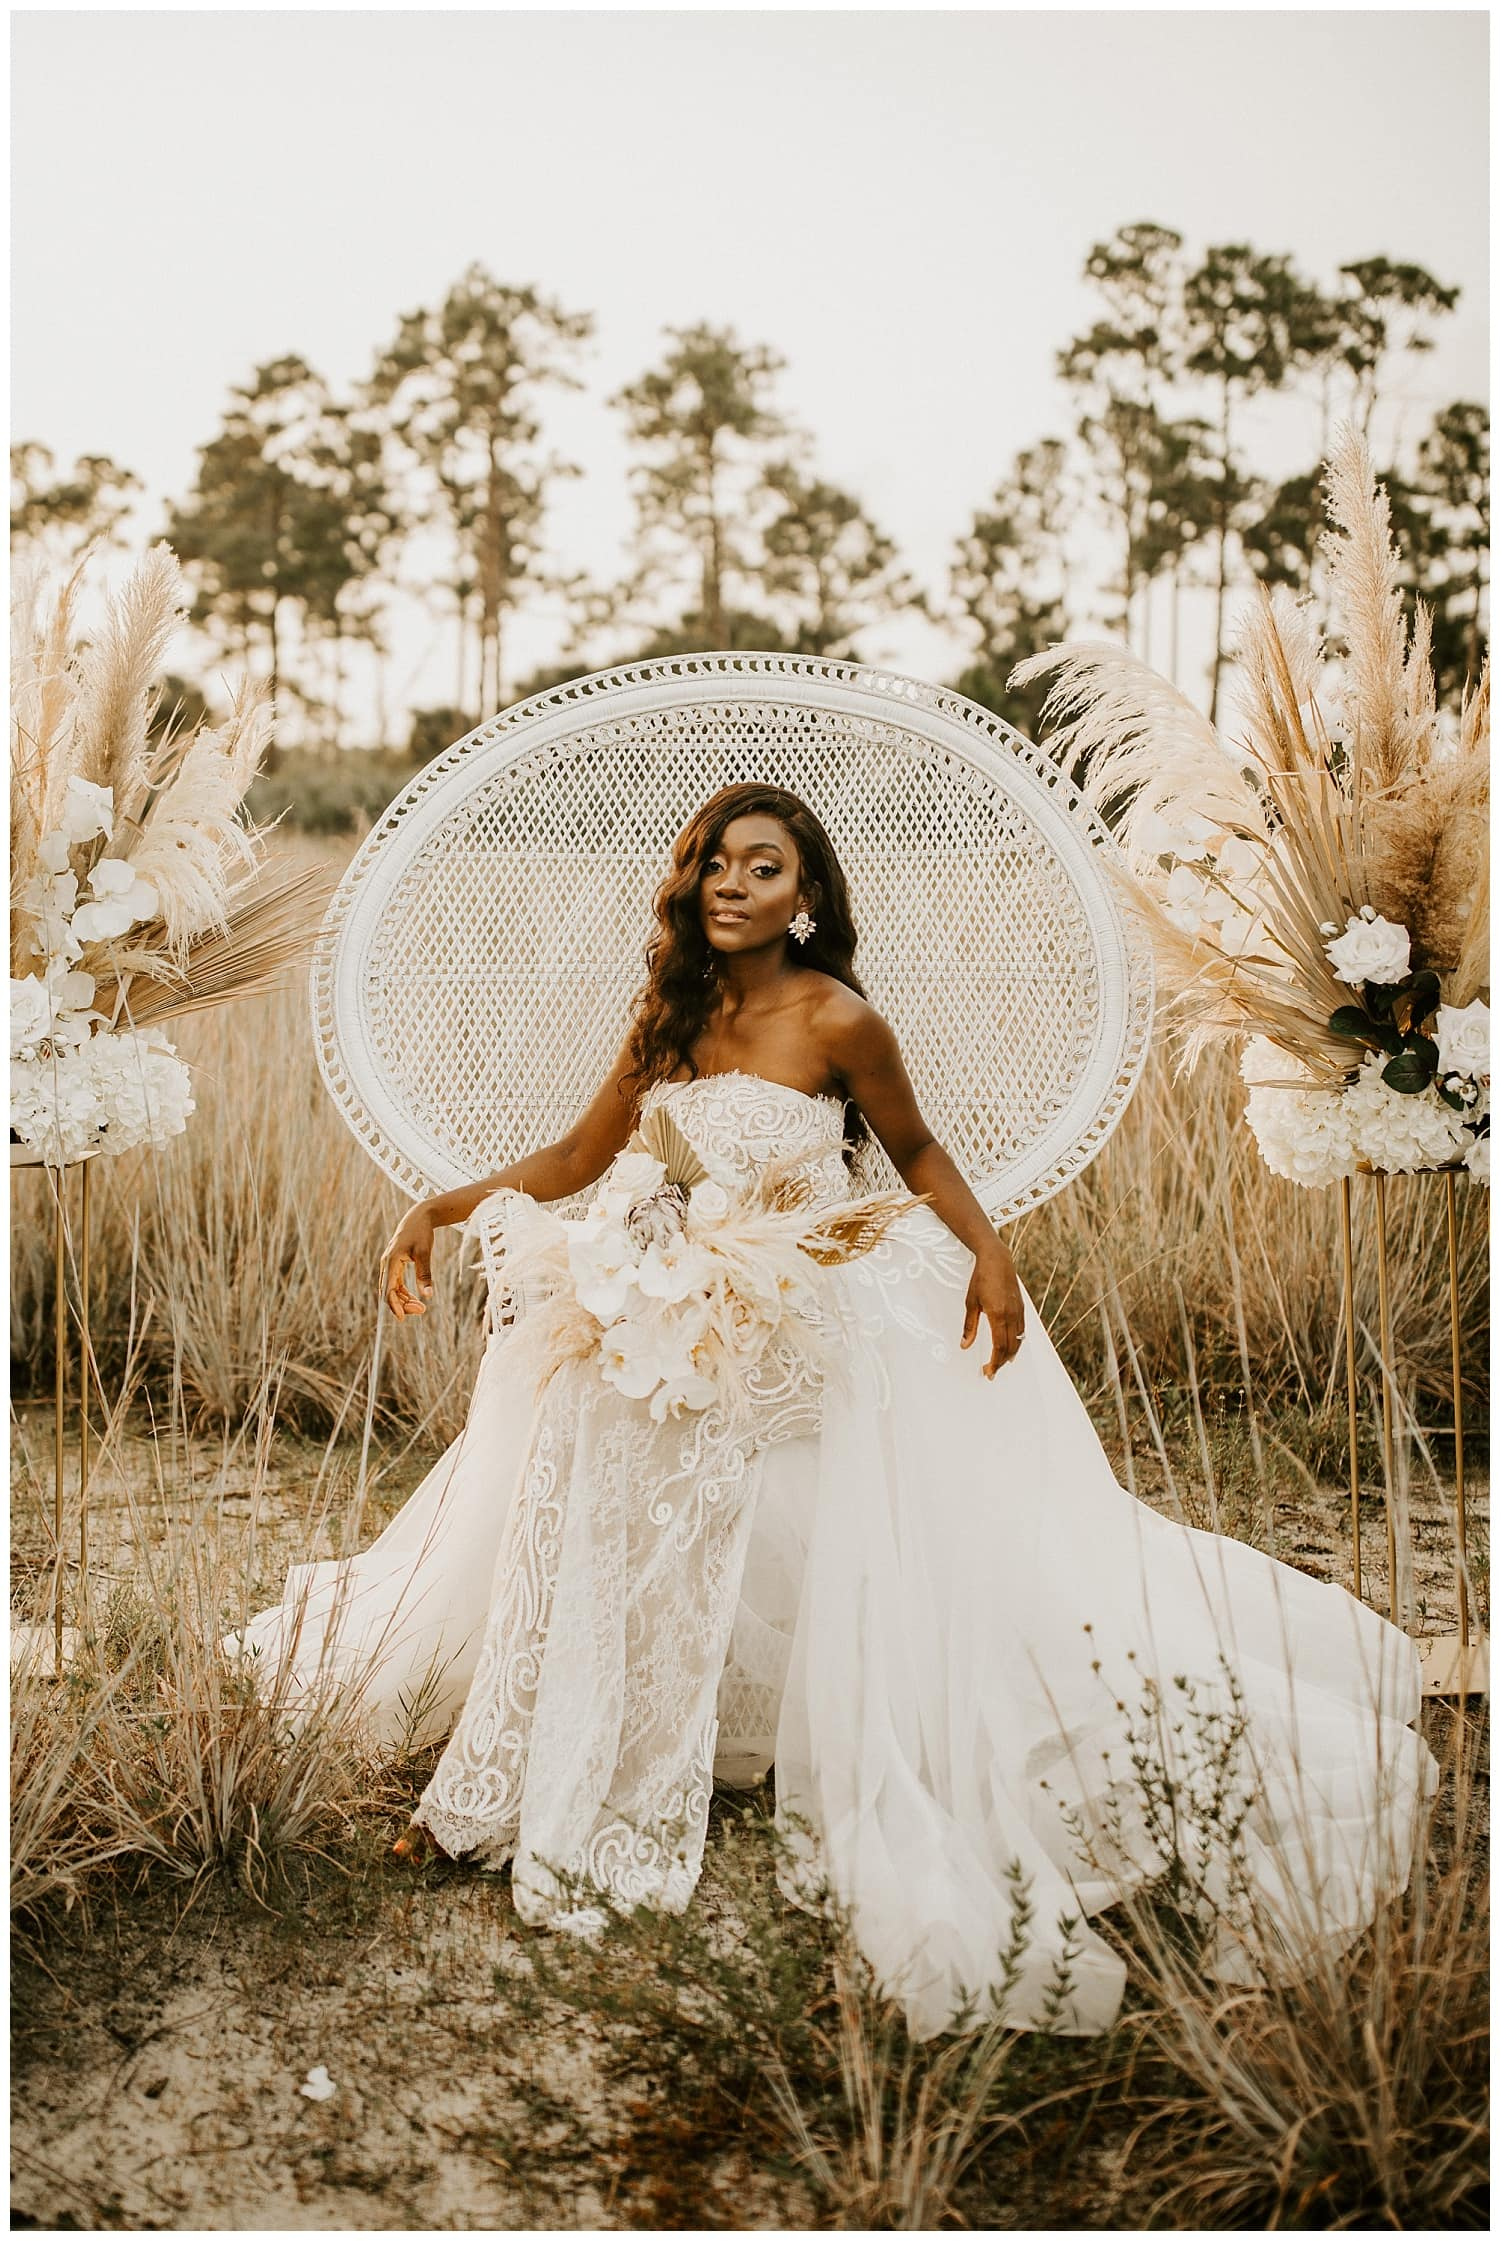 bohemian bridal photos,boho bridal photos,boho florida bride,florida keys elopement,florida keys wedding,jupiter elopement,key west elopement,miami elopement,palm beach bridal photos,palm beach bridal session,palm beach elopement,palm beach wedding photographer,pampas grass bouquet,pampas grass florals,pampas grass wedding bouquet,sherri hill dress,sherri hill wedding dress,stuart photographer,stuart wedding photographer,